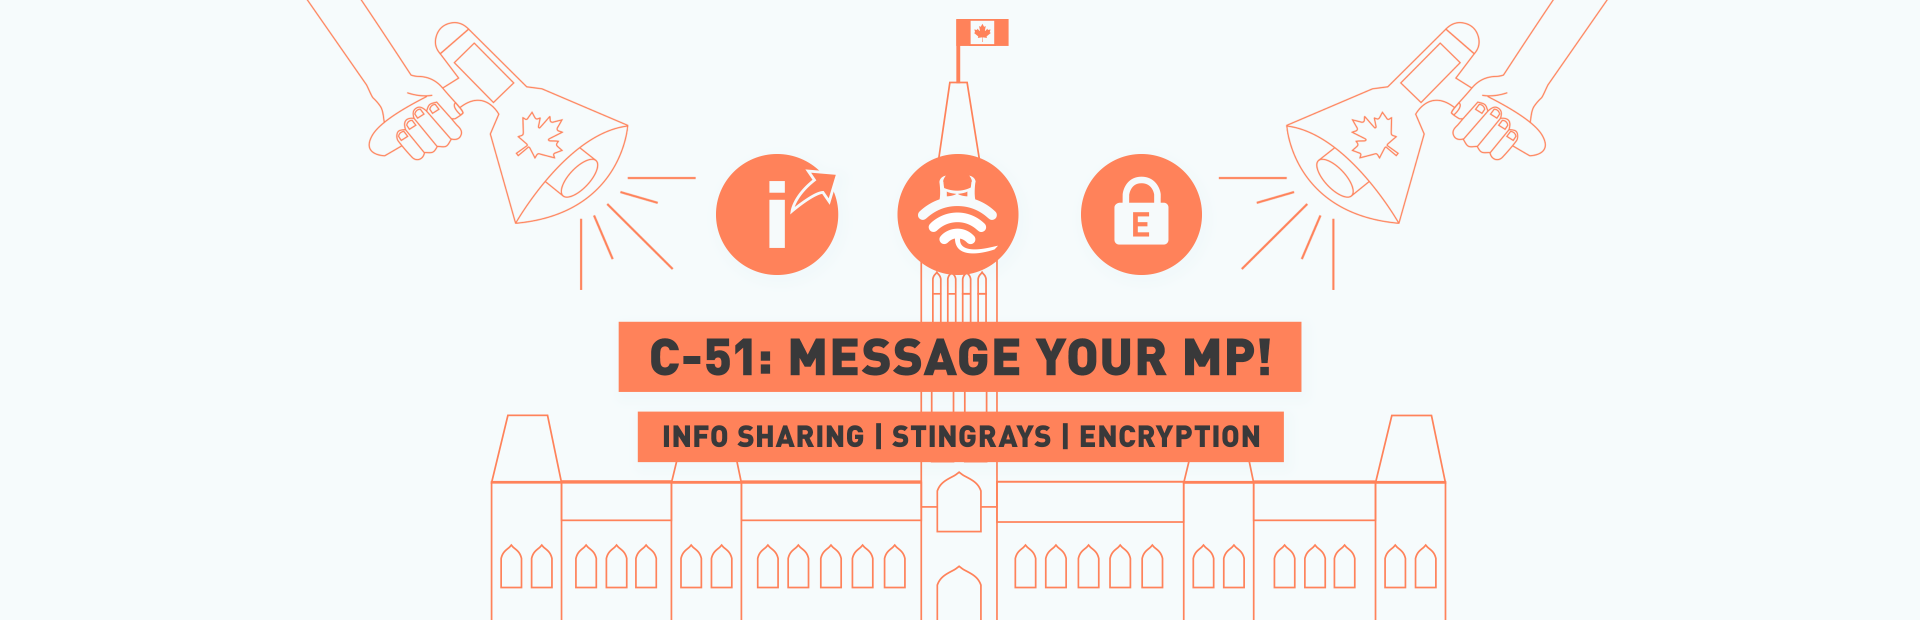 C-51: MESSAGE YOUR MP